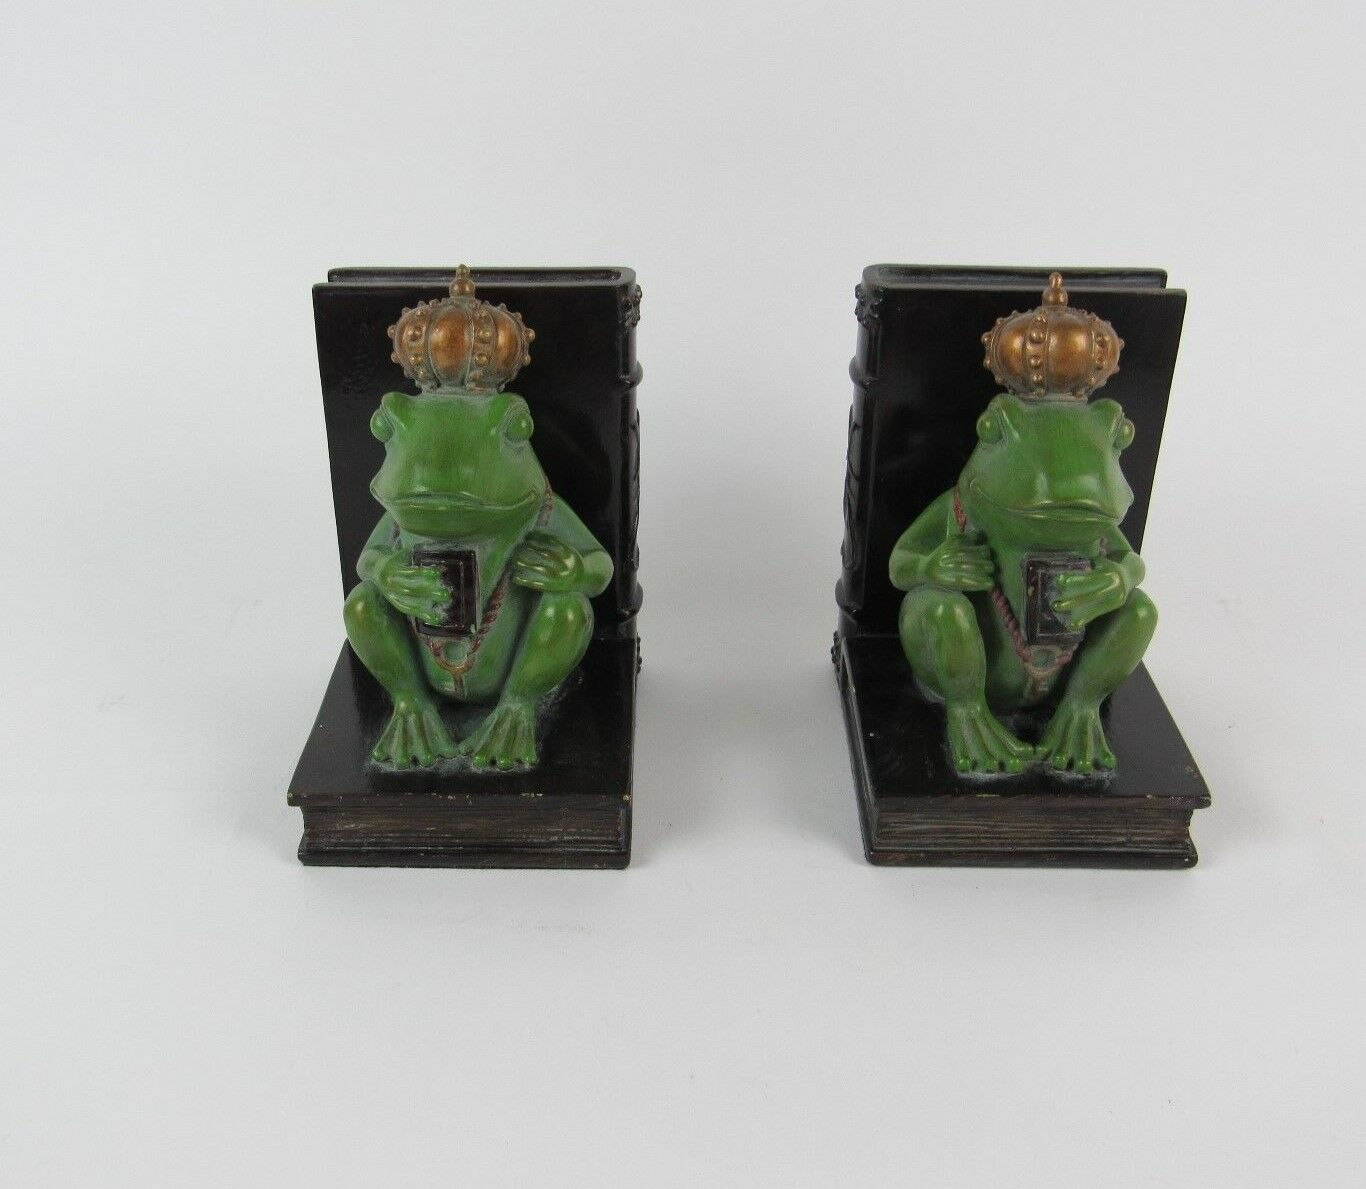 Resin Rajah Frog With Crown Sitting on Book Book Book Duo  Bookends Figurine by SPI-HOME 1df7ec